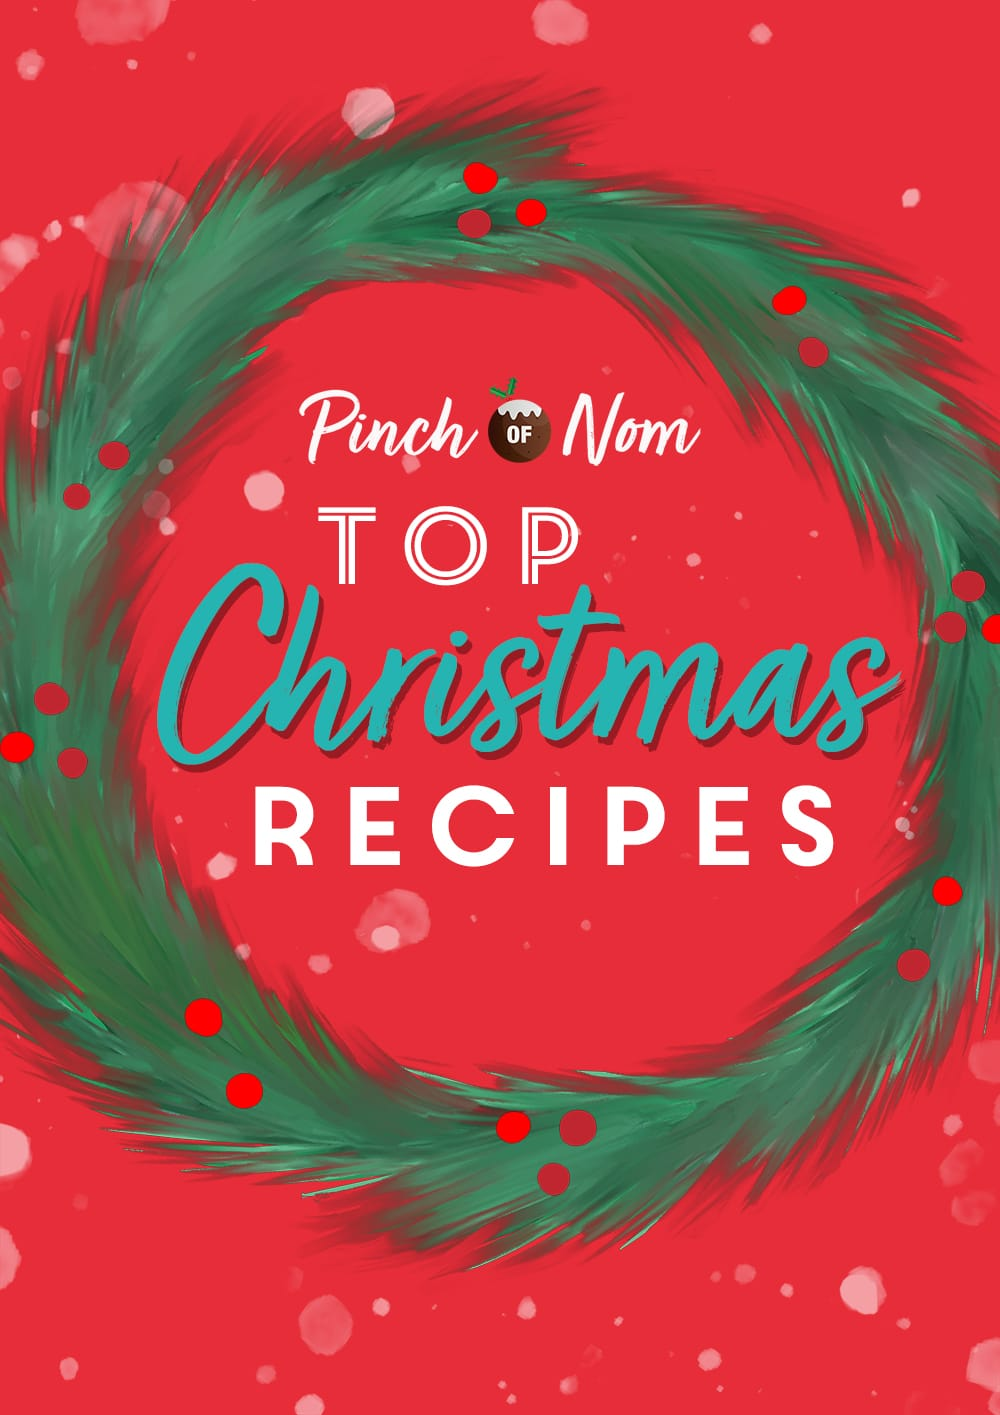 Top Christmas Recipes - Pinch of Nom Slimming Recipes